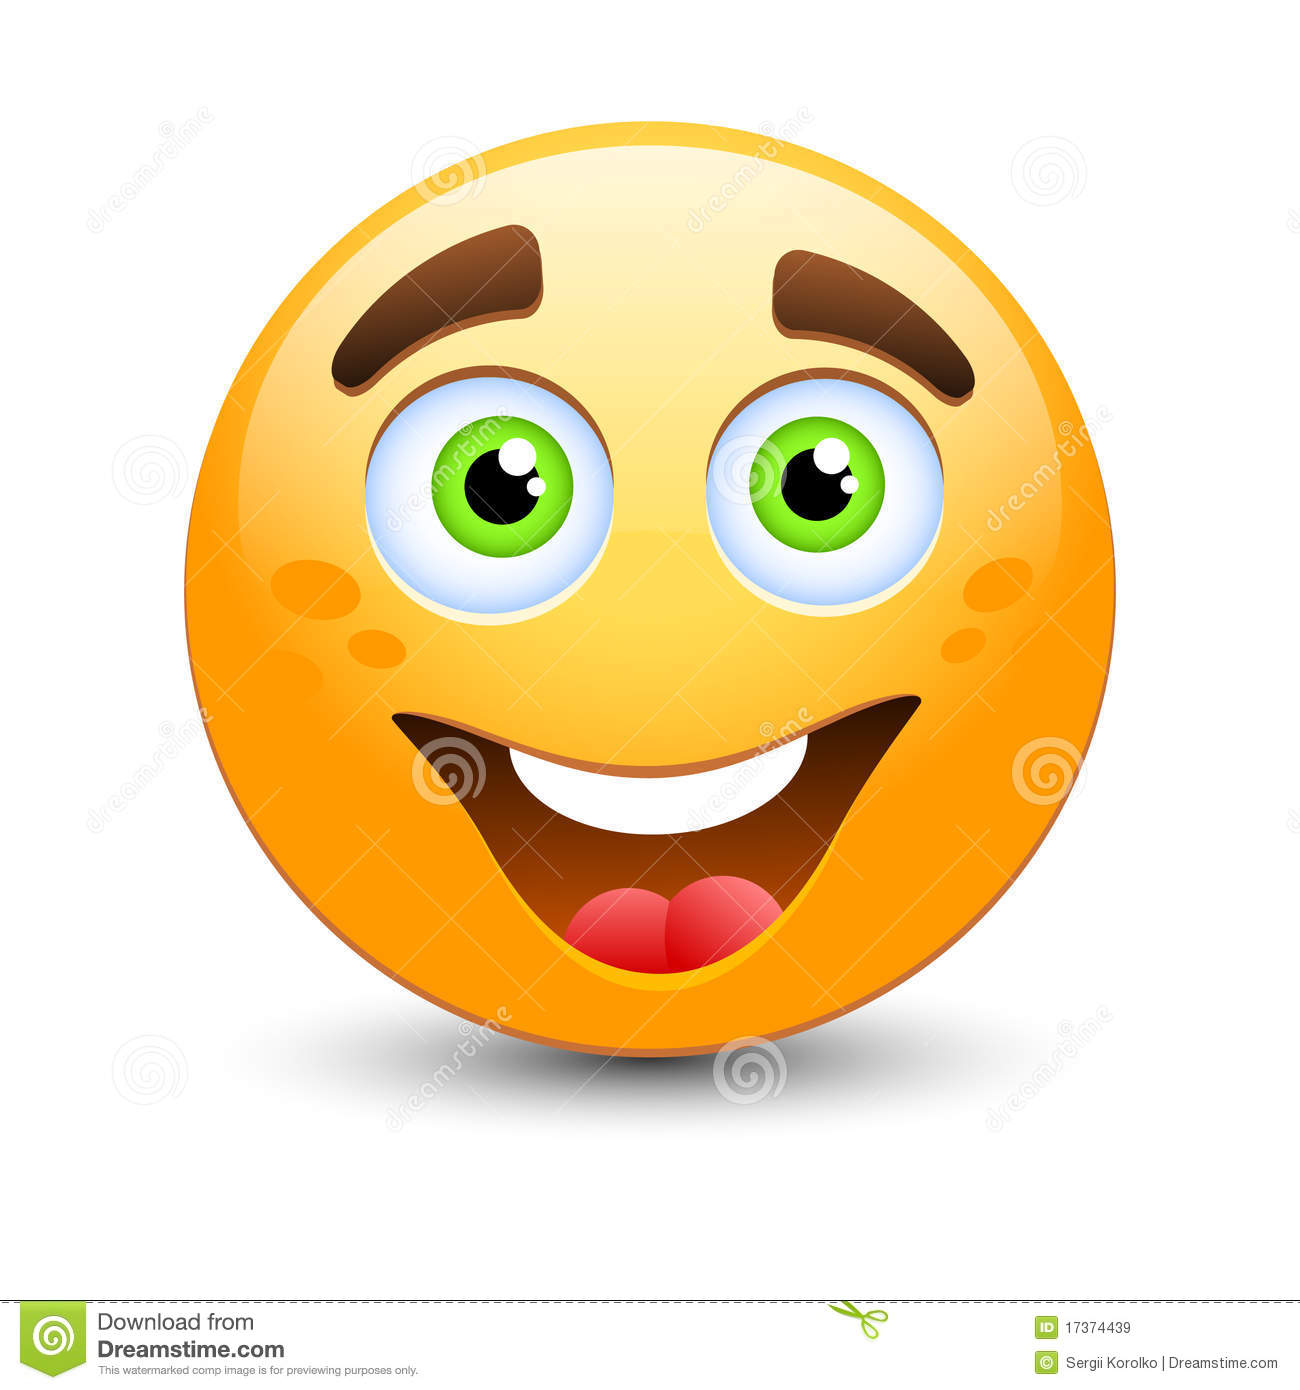 Happy Emoticon Royalty Free Stock Images - Image: 17374439